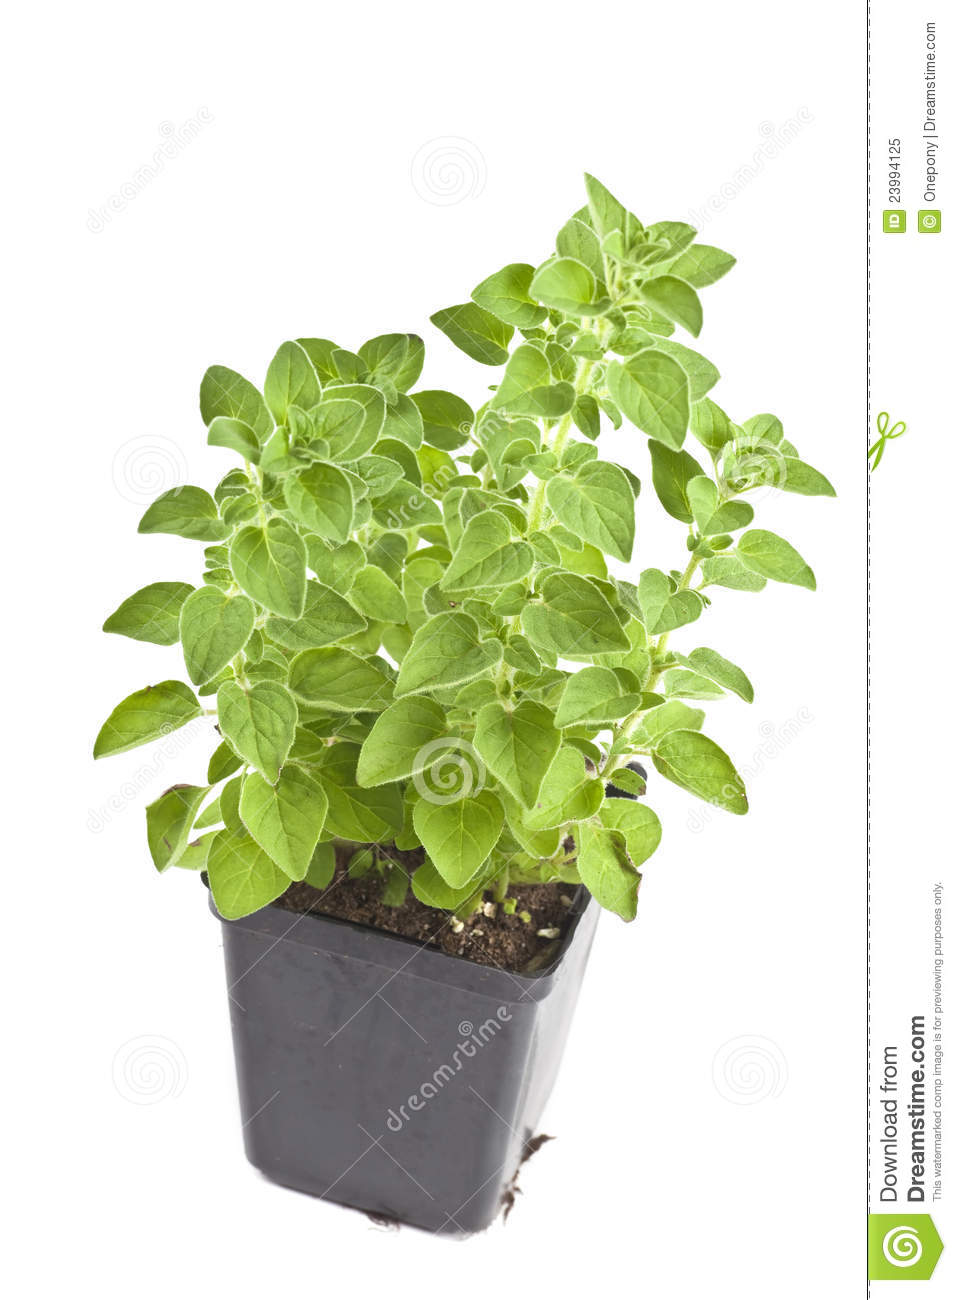 Oregano plant stock image image of spice grow natural for Dream plants for the natural garden